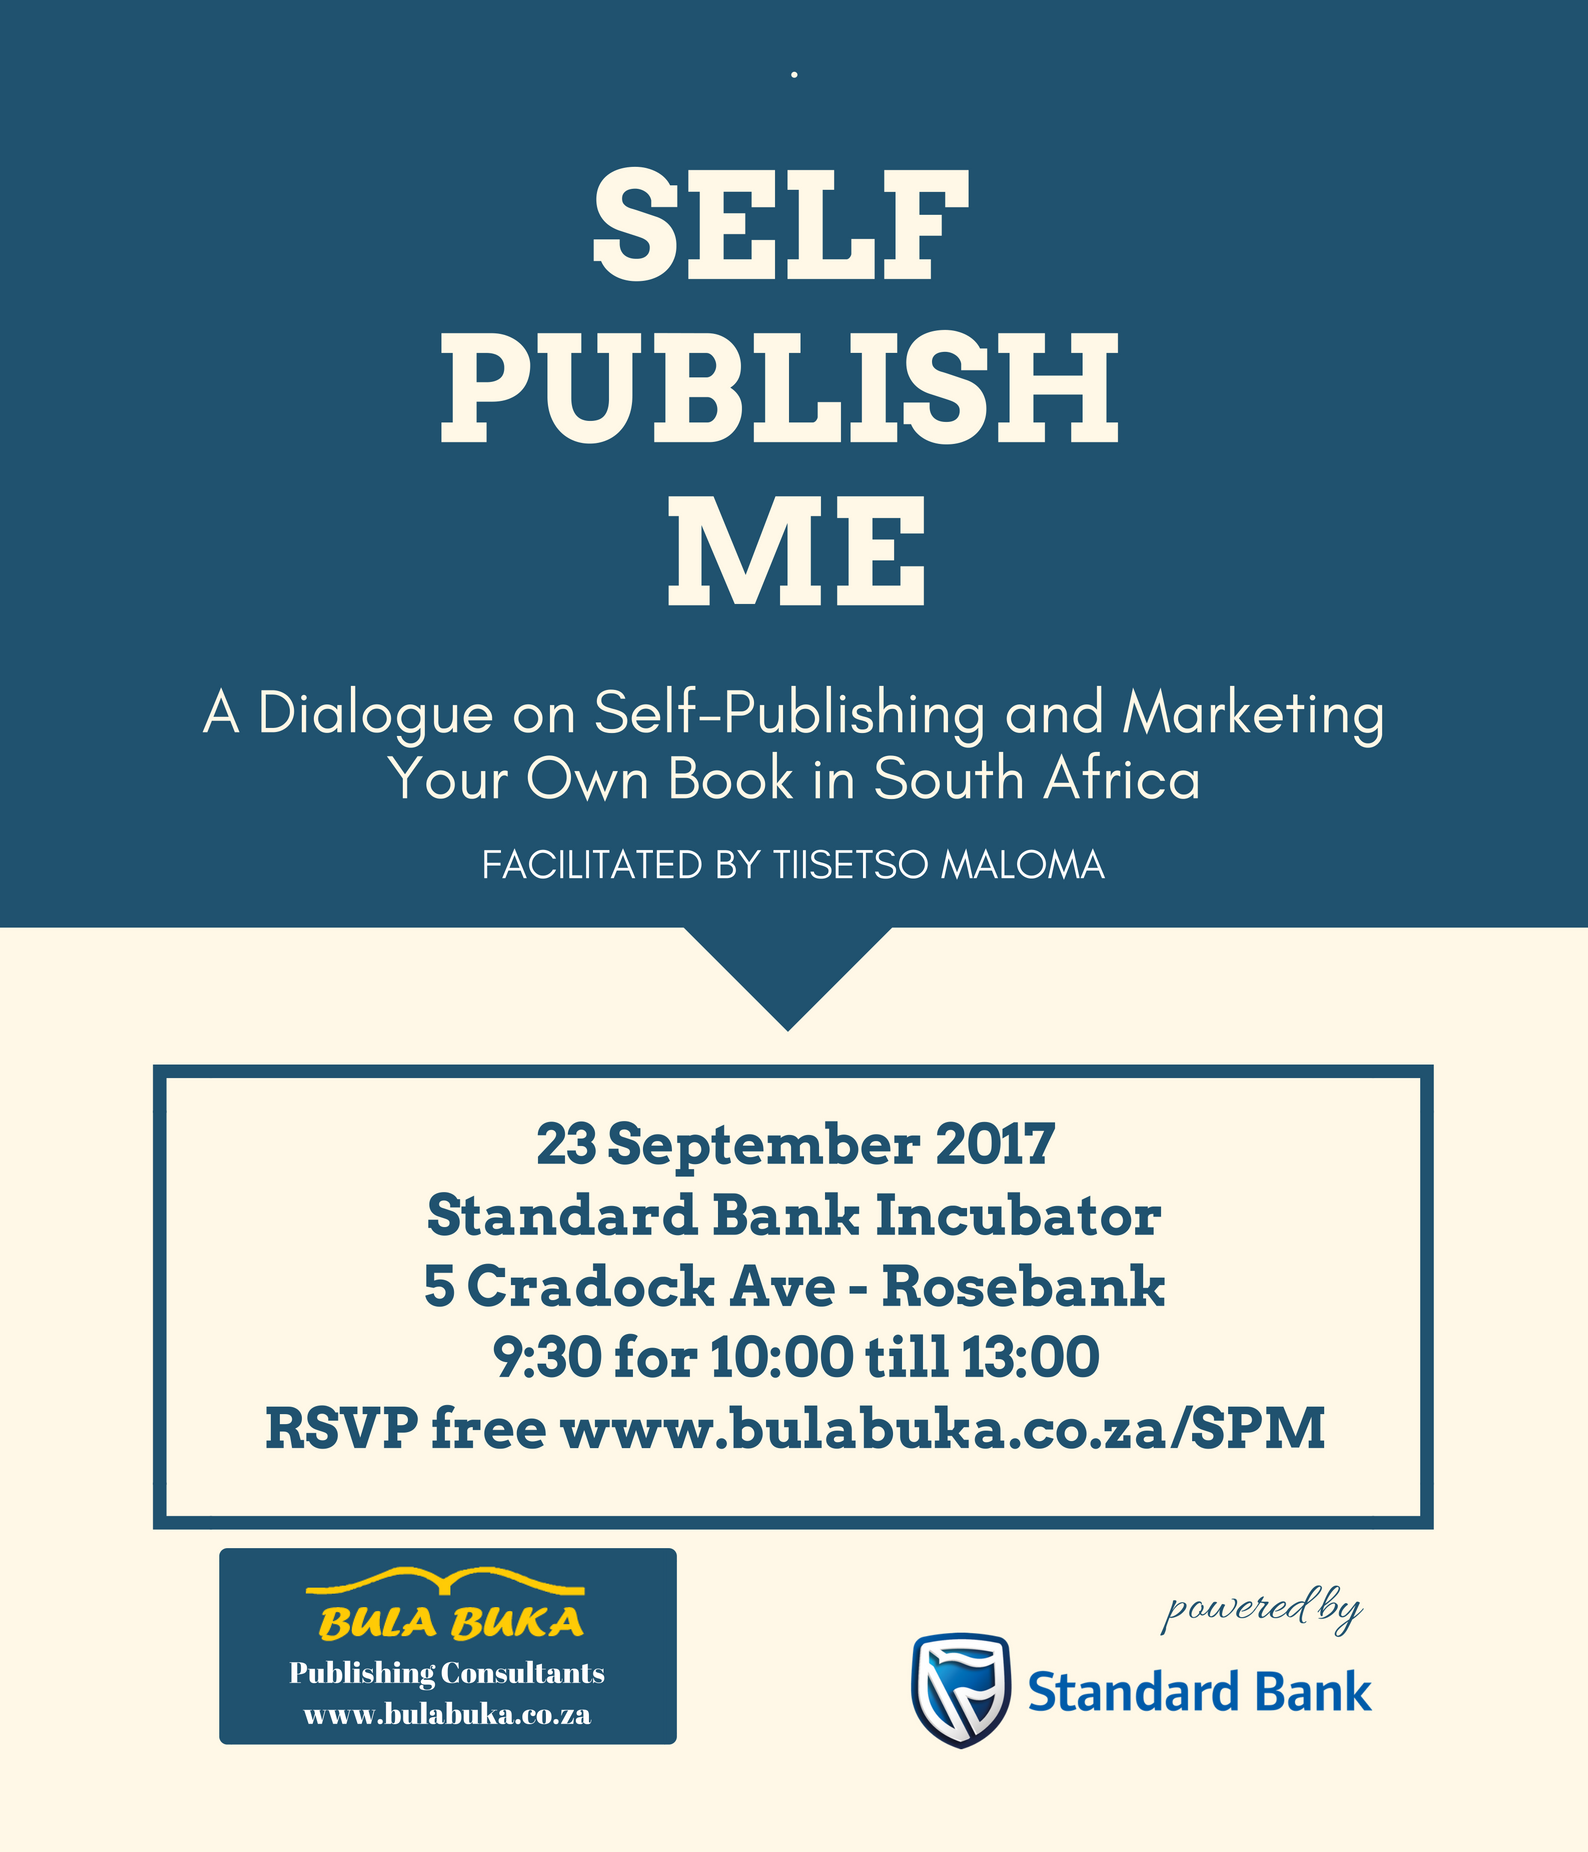 poster - Self Publish Me - Bula Buka - 23 Septermber 2017